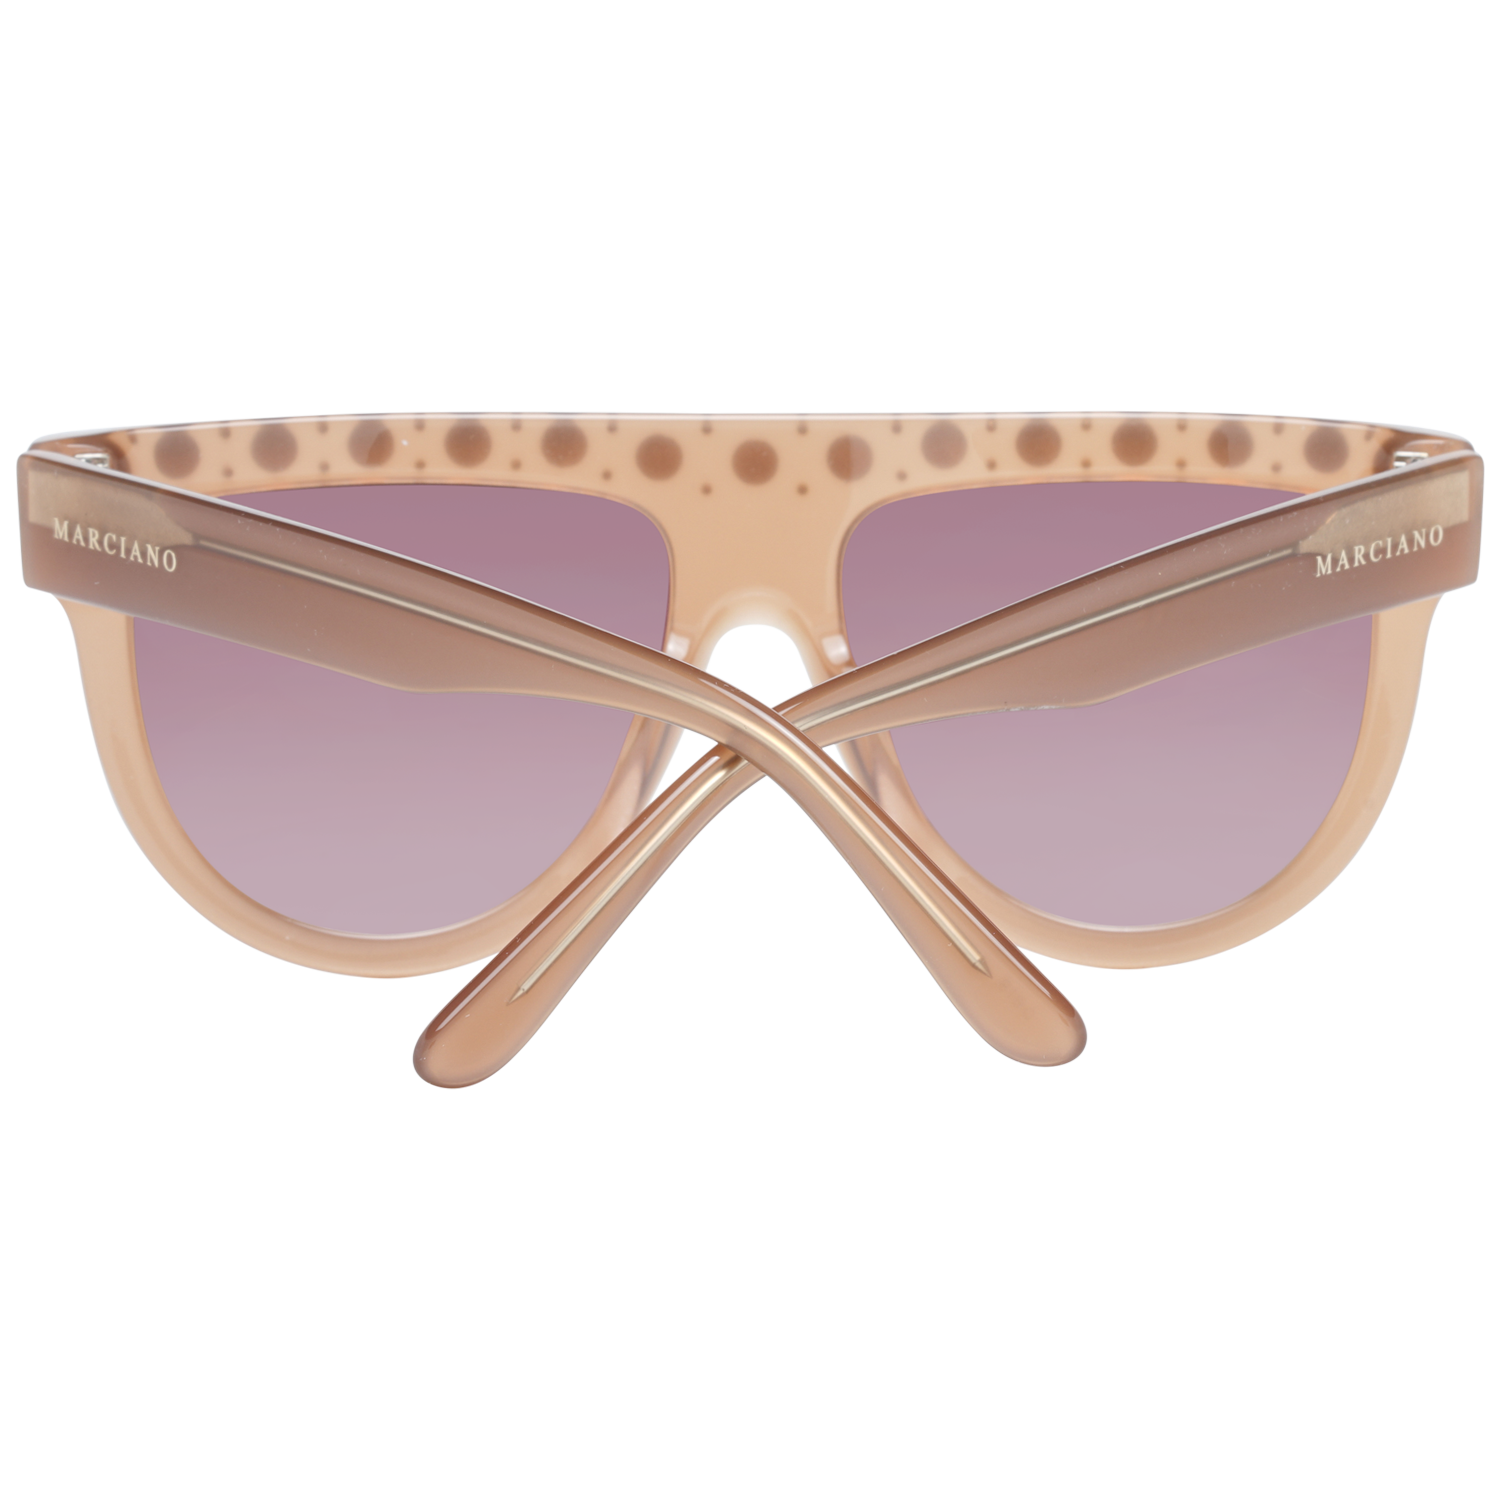 Guess By Marciano Sunglasses GM0795 72F 56 Pink